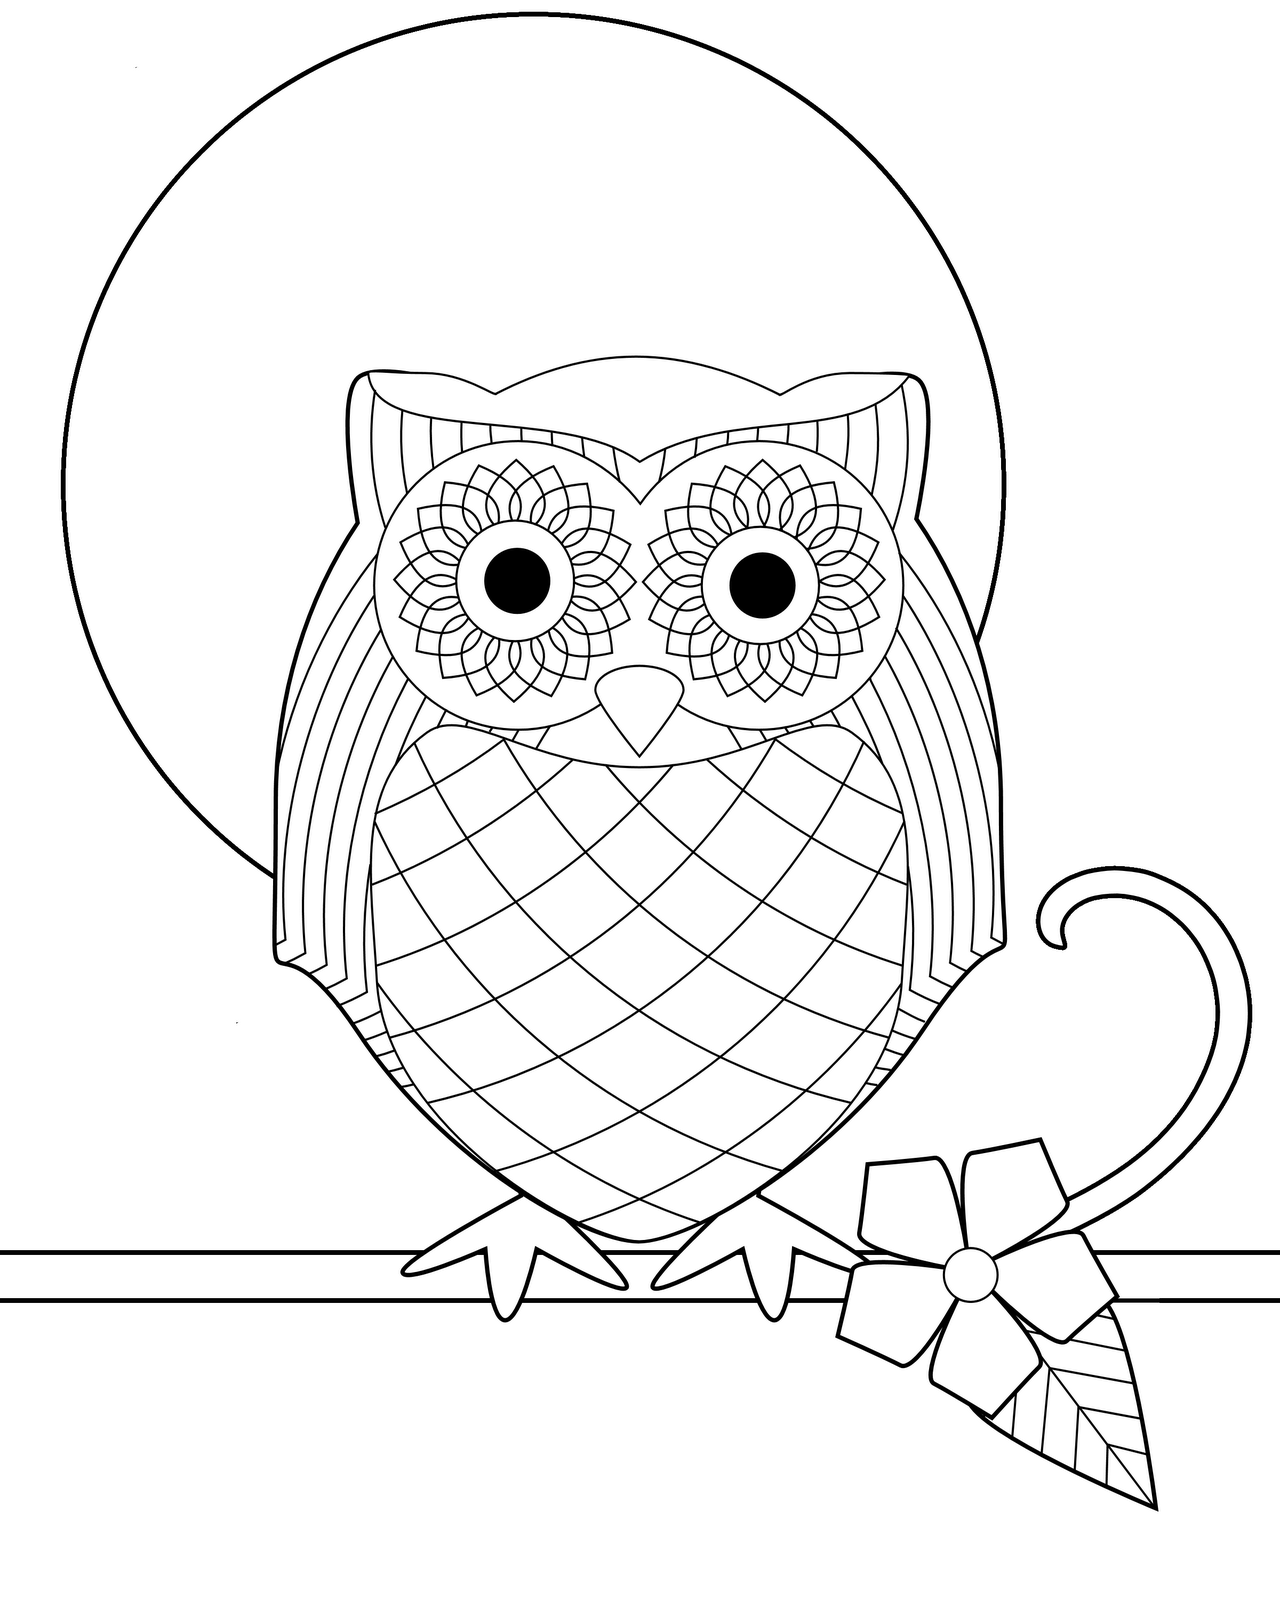 Free Printable Owl Coloring Pages For Kids Coloring Pages Of Owls